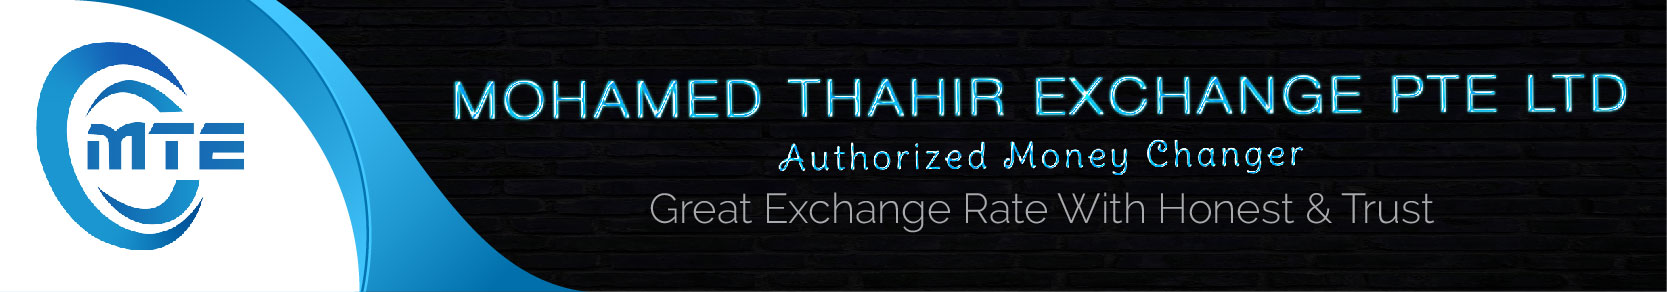 Mohamed Thahir Exchange PTE LTD